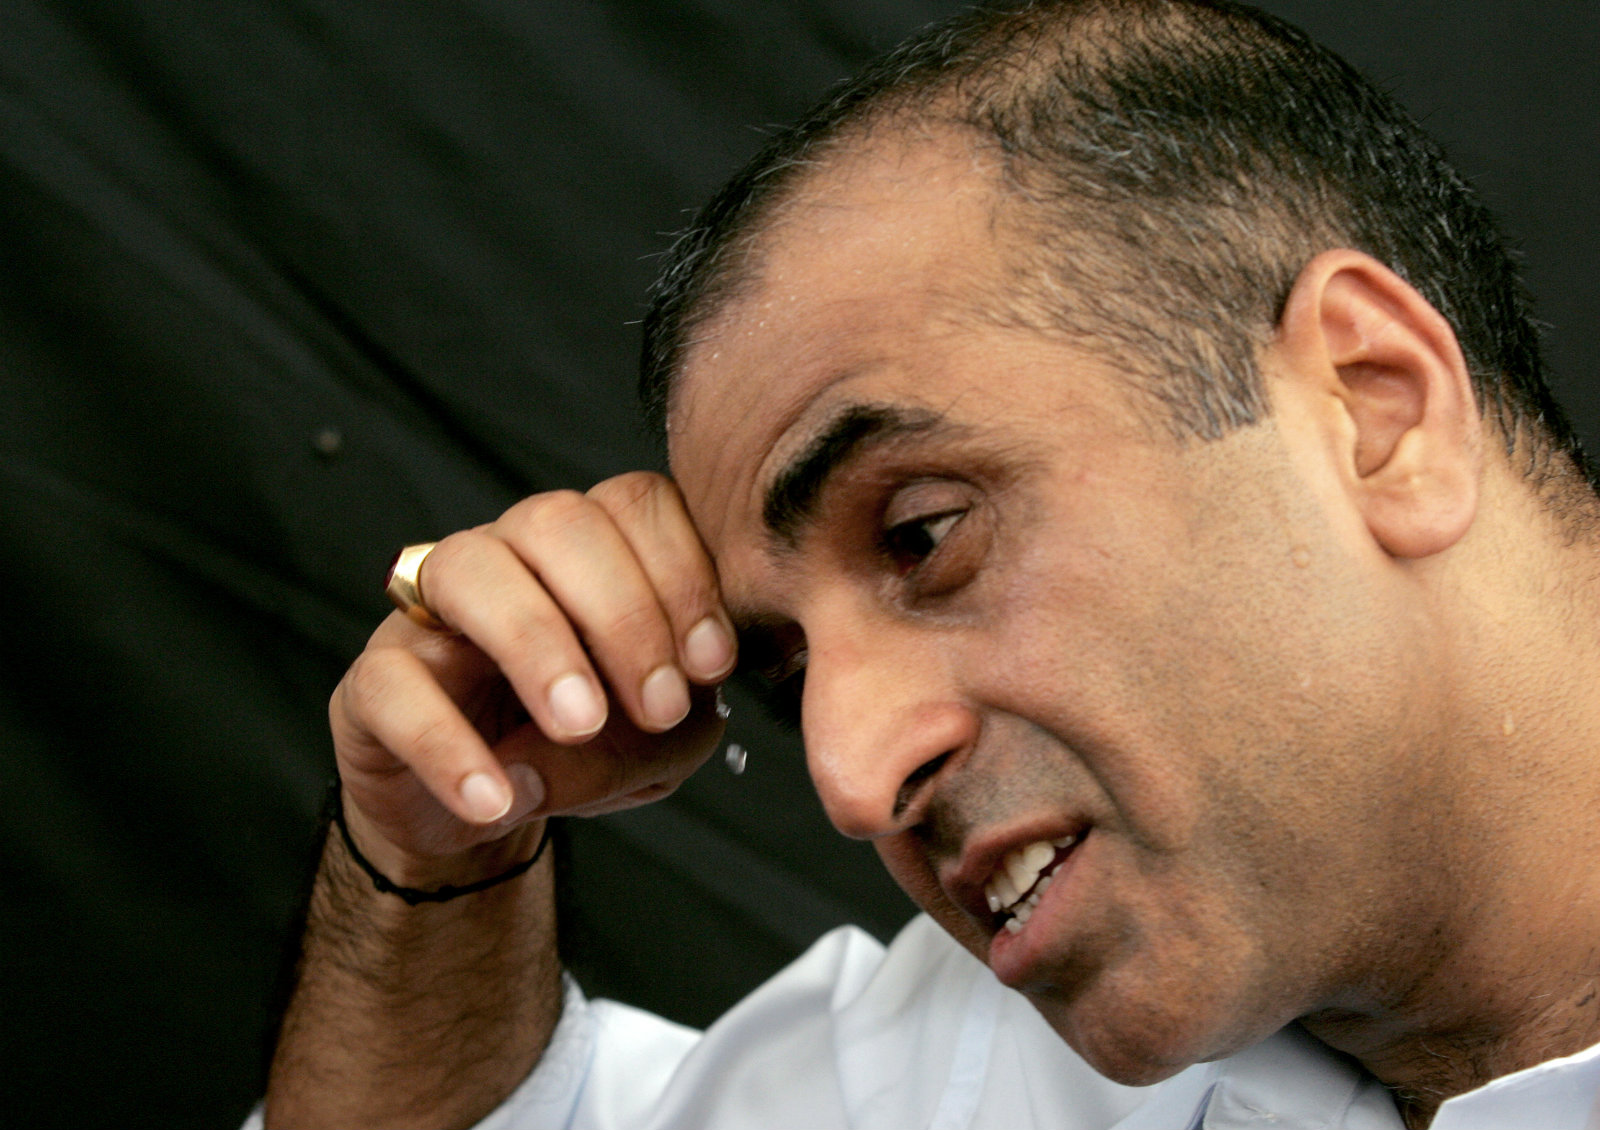 The chairman of Bharti Airtel Ltd. Sunil Mittal wipes his face during interaction with journalists in Ladhowal, in the northern Indian state of Punjab, September 27, 2006. India's telecoms regulator recommended base prices on Wednesday for an auction of 3G spectrum for high-speed mobile phone services ranging from 150 million rupees ($3.27 million) to 800 million rupees.